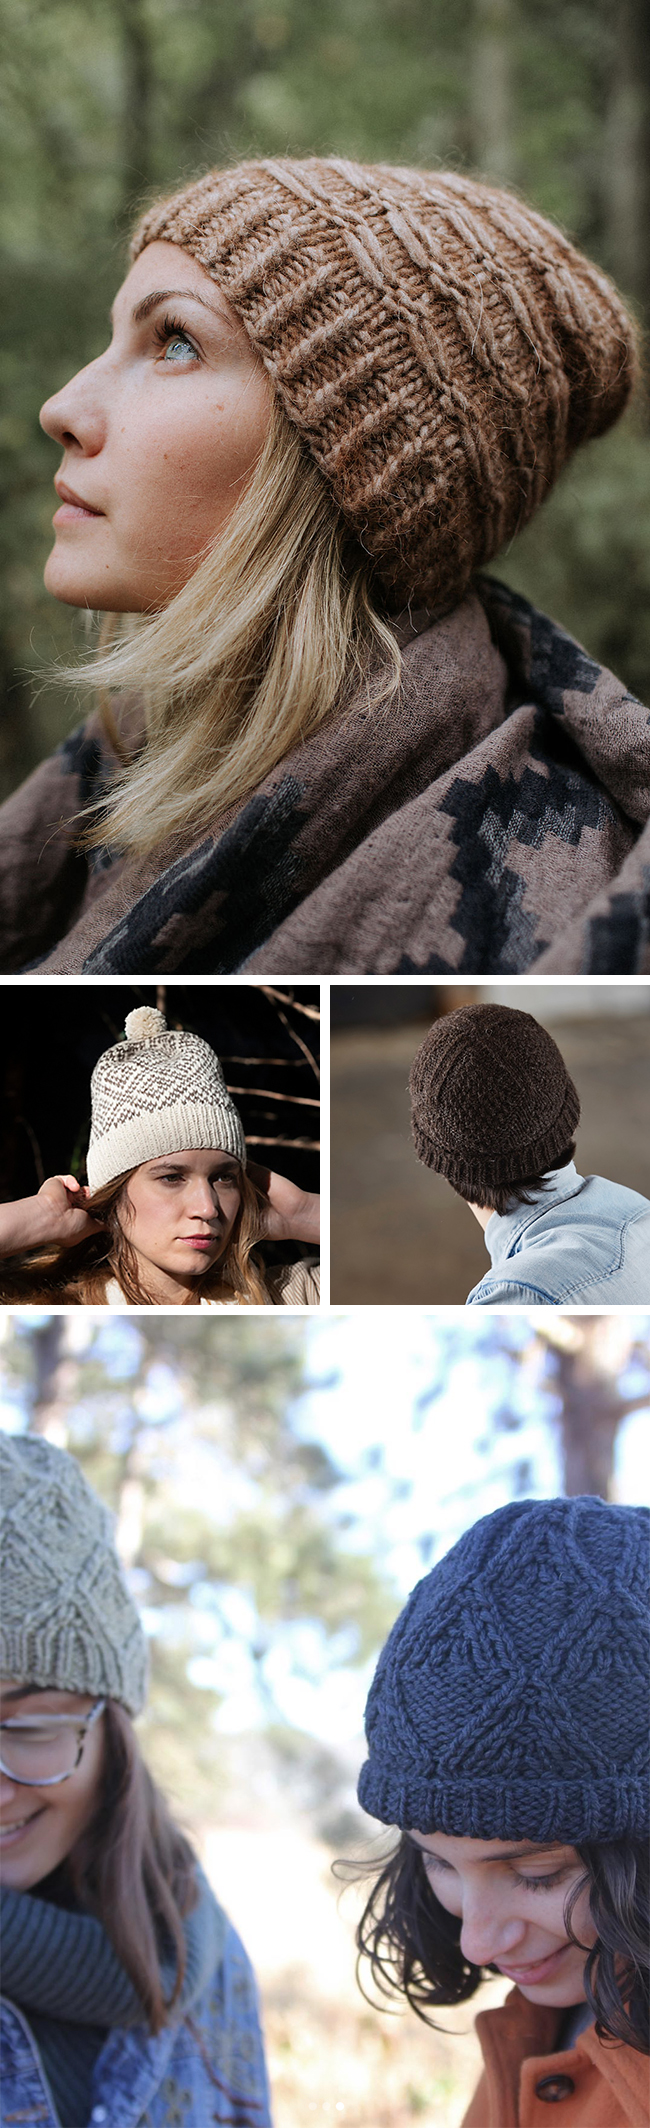 Quick Knits: Hats patterns for gift knitting